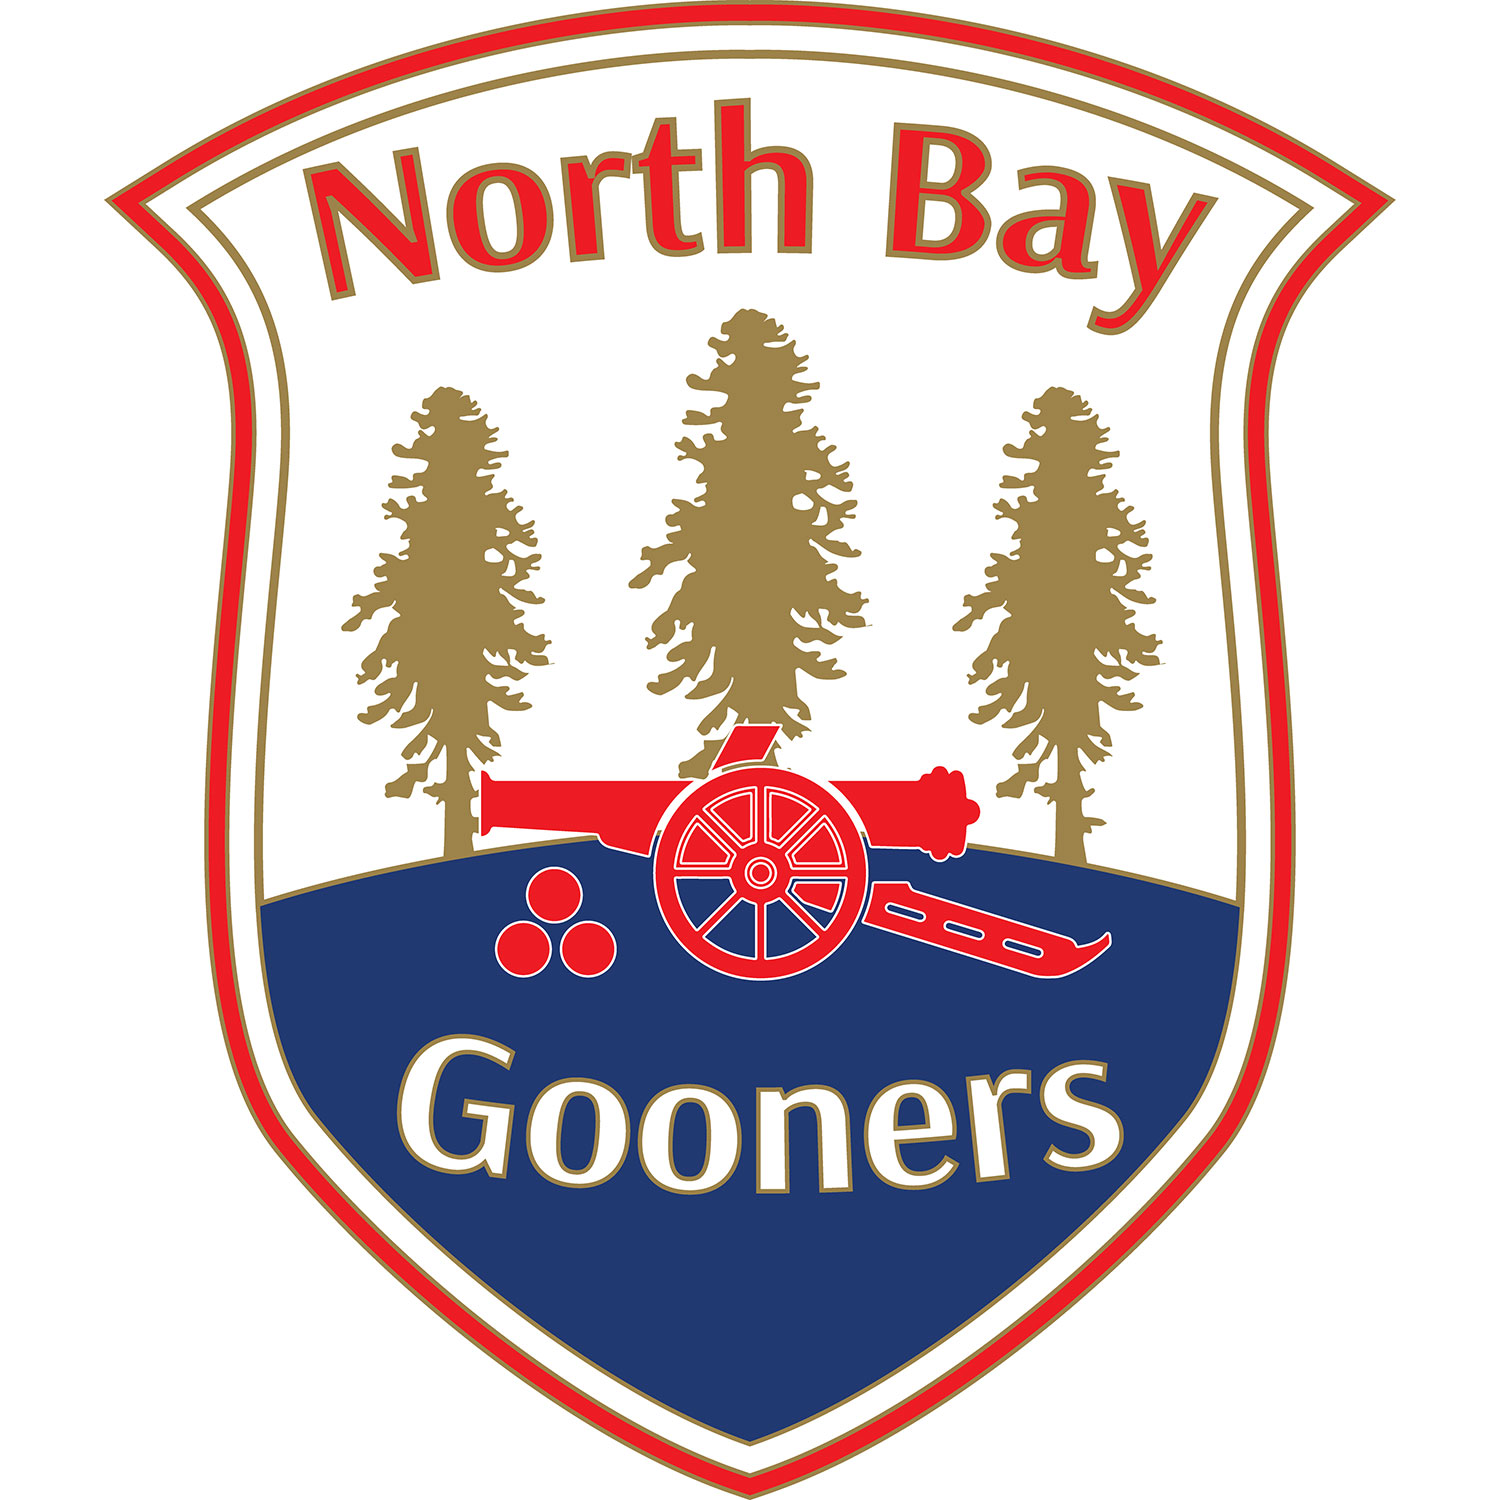 North Bay Gooners